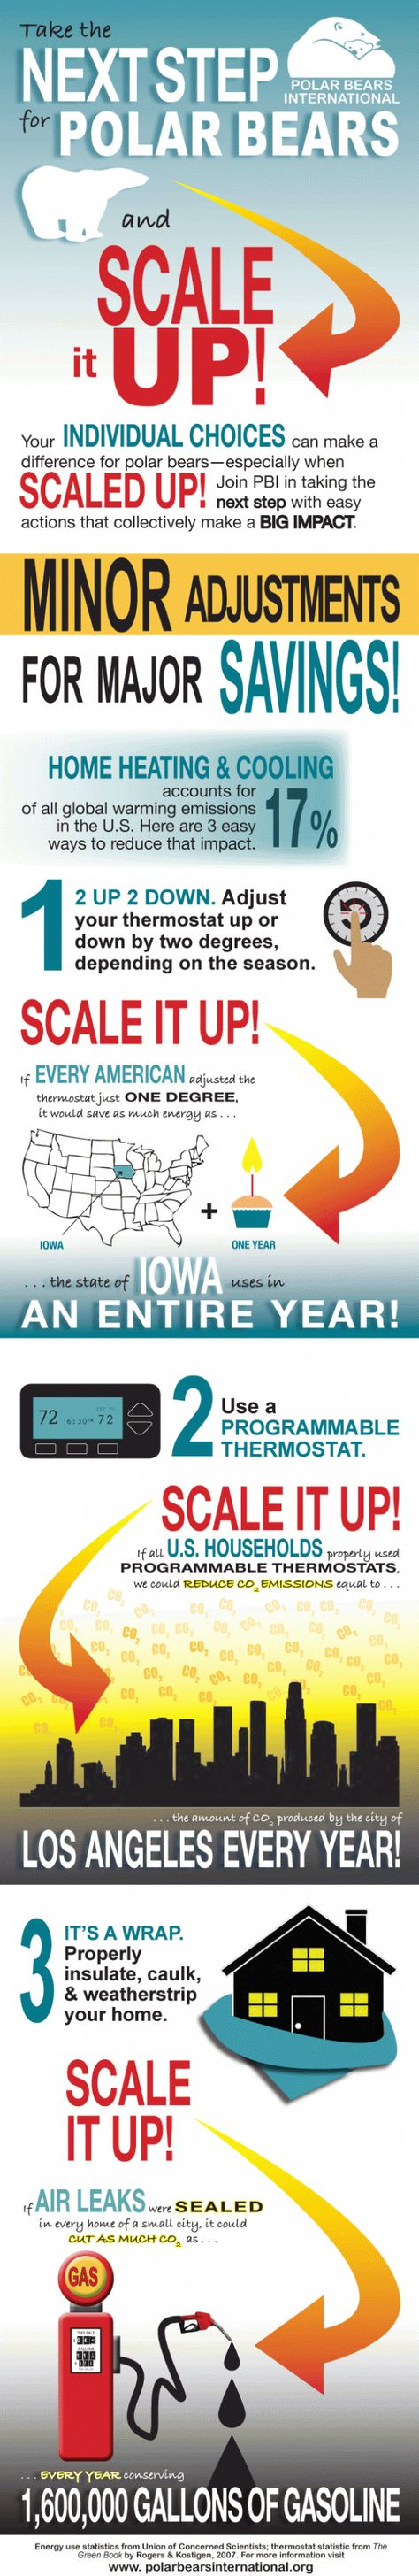 International Polar Bear Day Thermostat Challenge Polar Bears